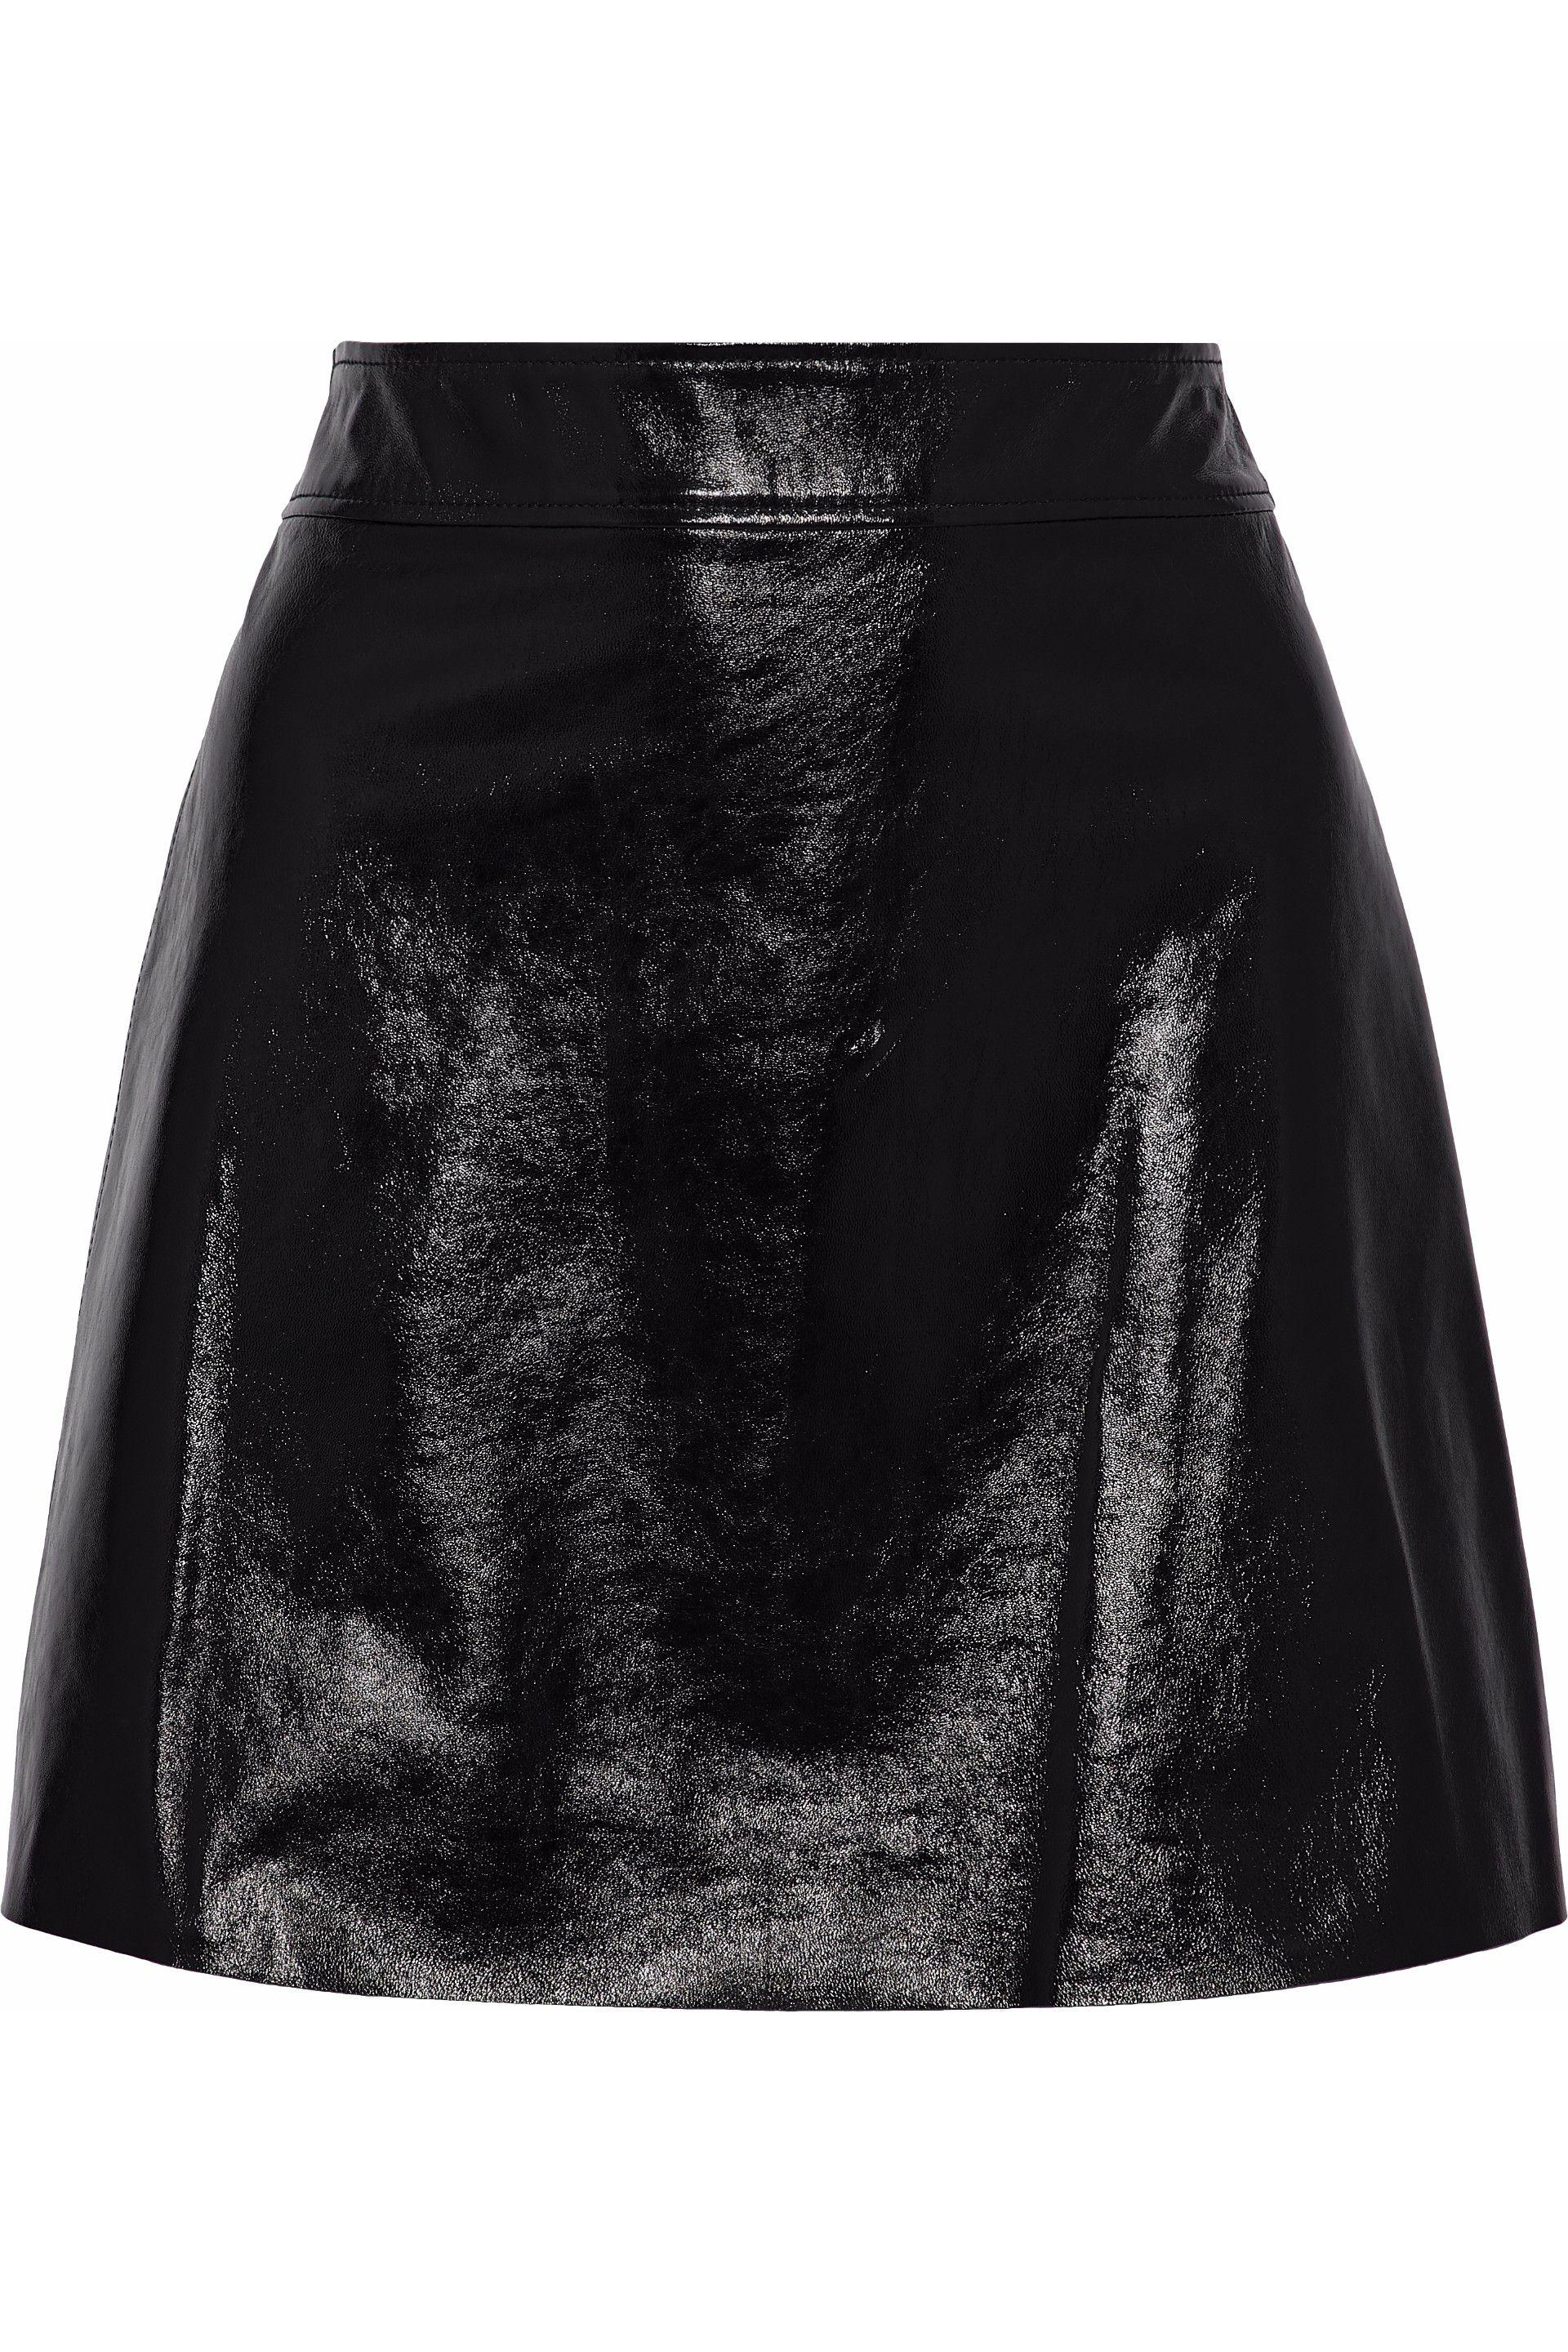 2c917620d8 Theory Woman Crinkled Patent-leather Mini Skirt Black in Black - Lyst